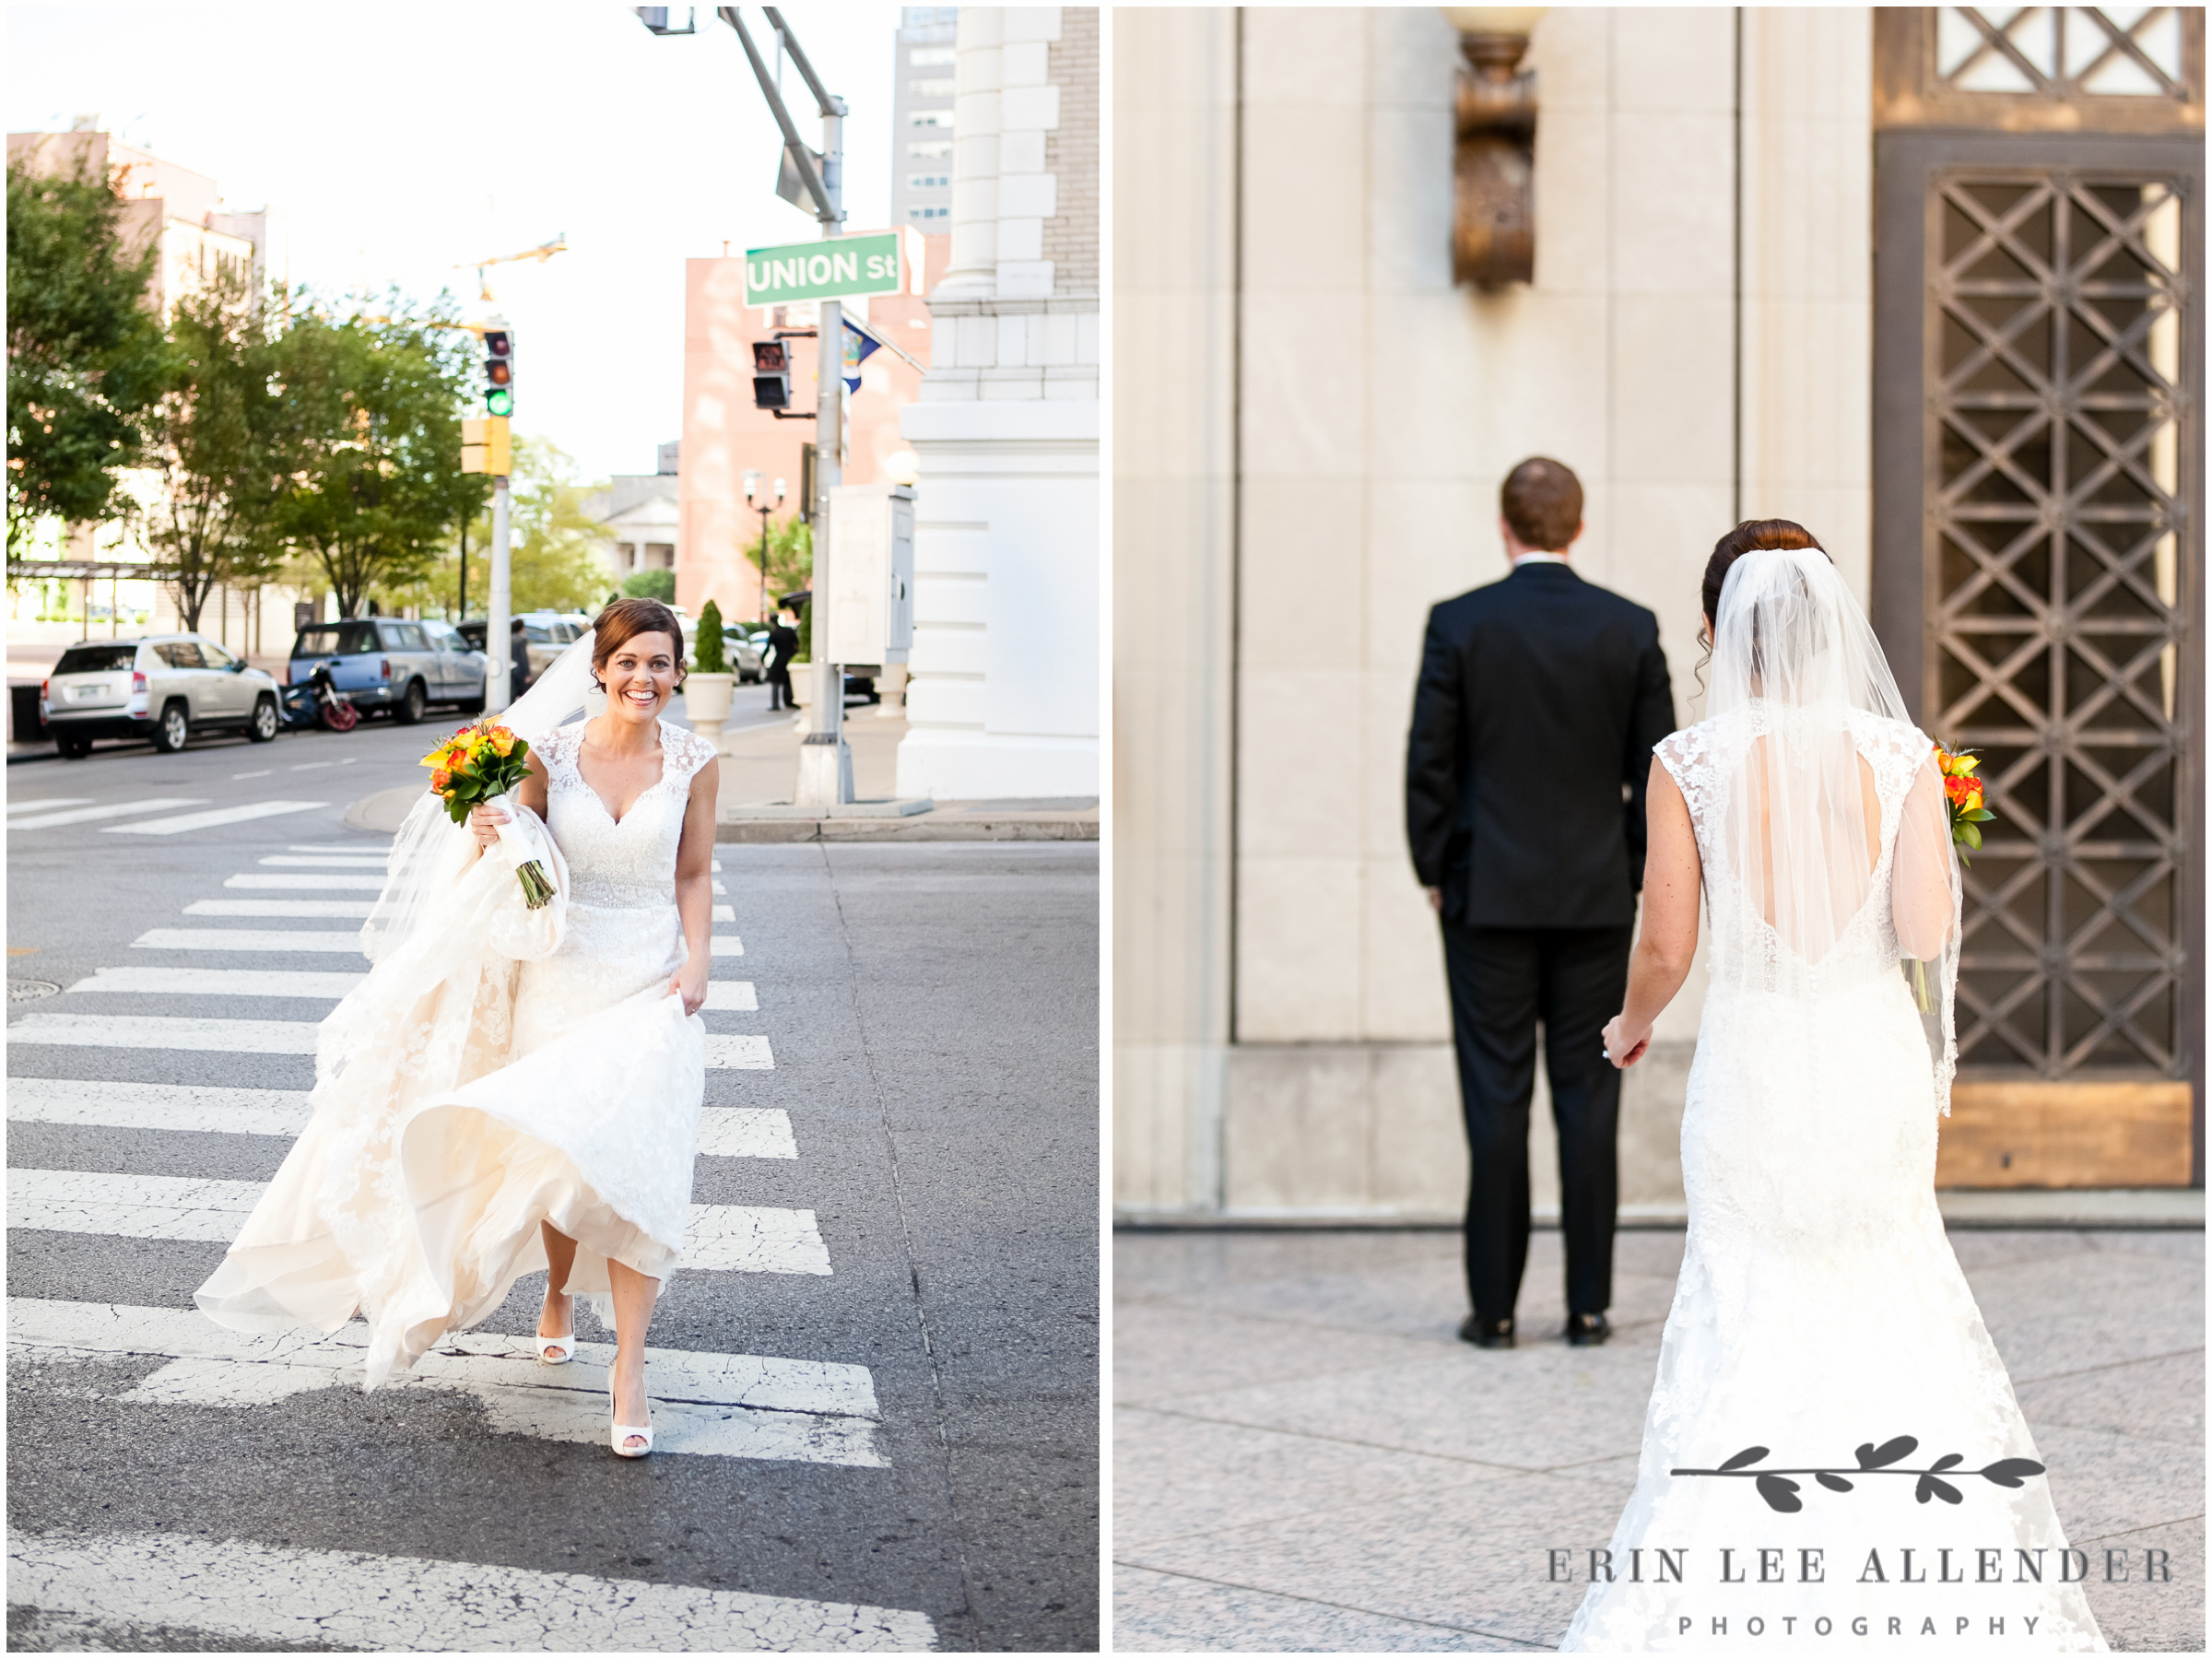 Bride_Walks_to_First_Look